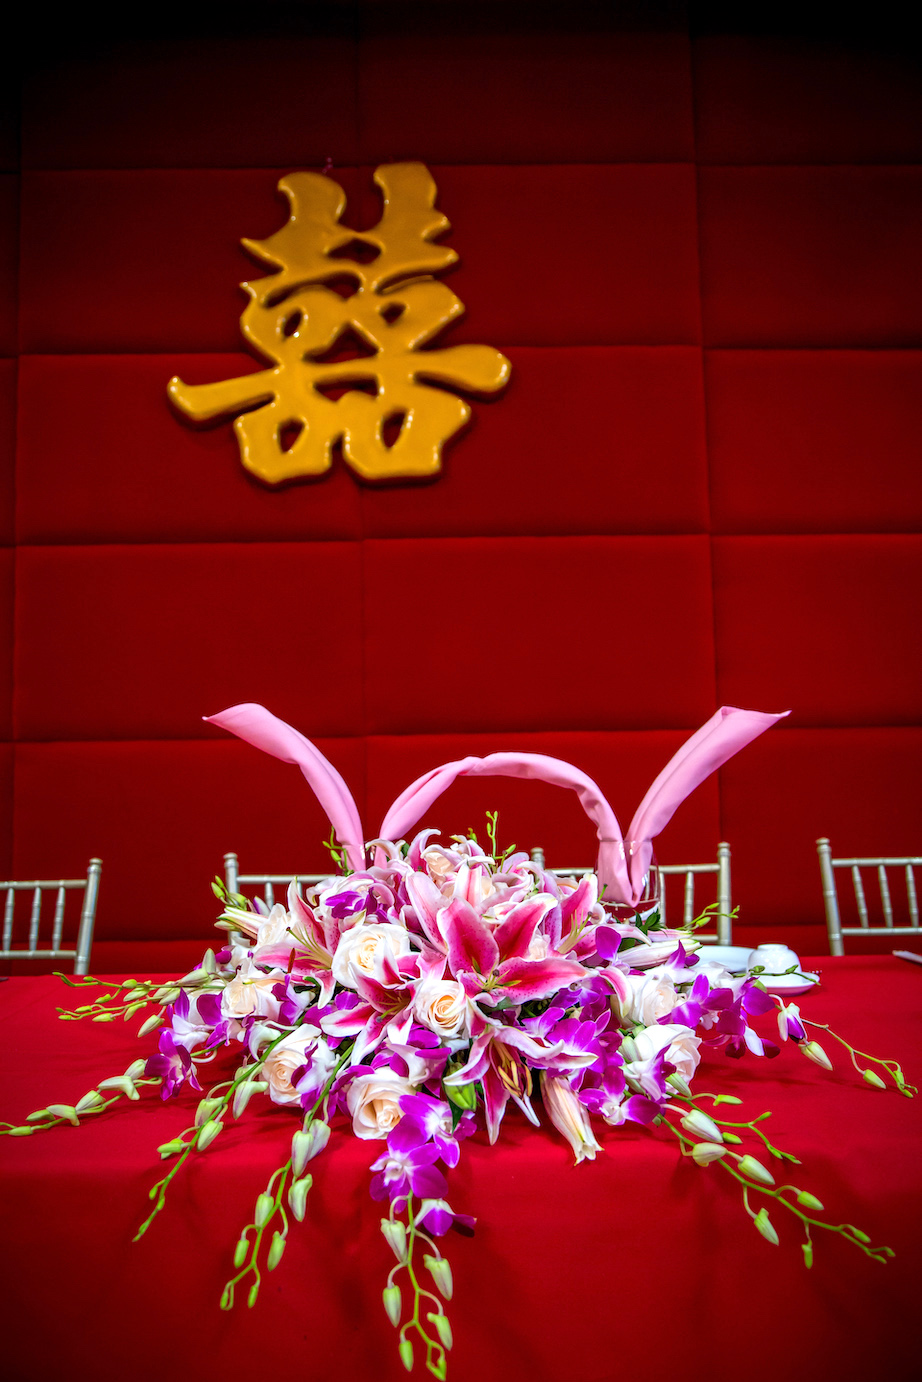 - Orchids are some of the most beautiful flowers, with their long stems and multiple blooms. This wedding centerpiece focuses on the bride and groom, with the orchid blooms cascading down and making the centerpiece look bigger.